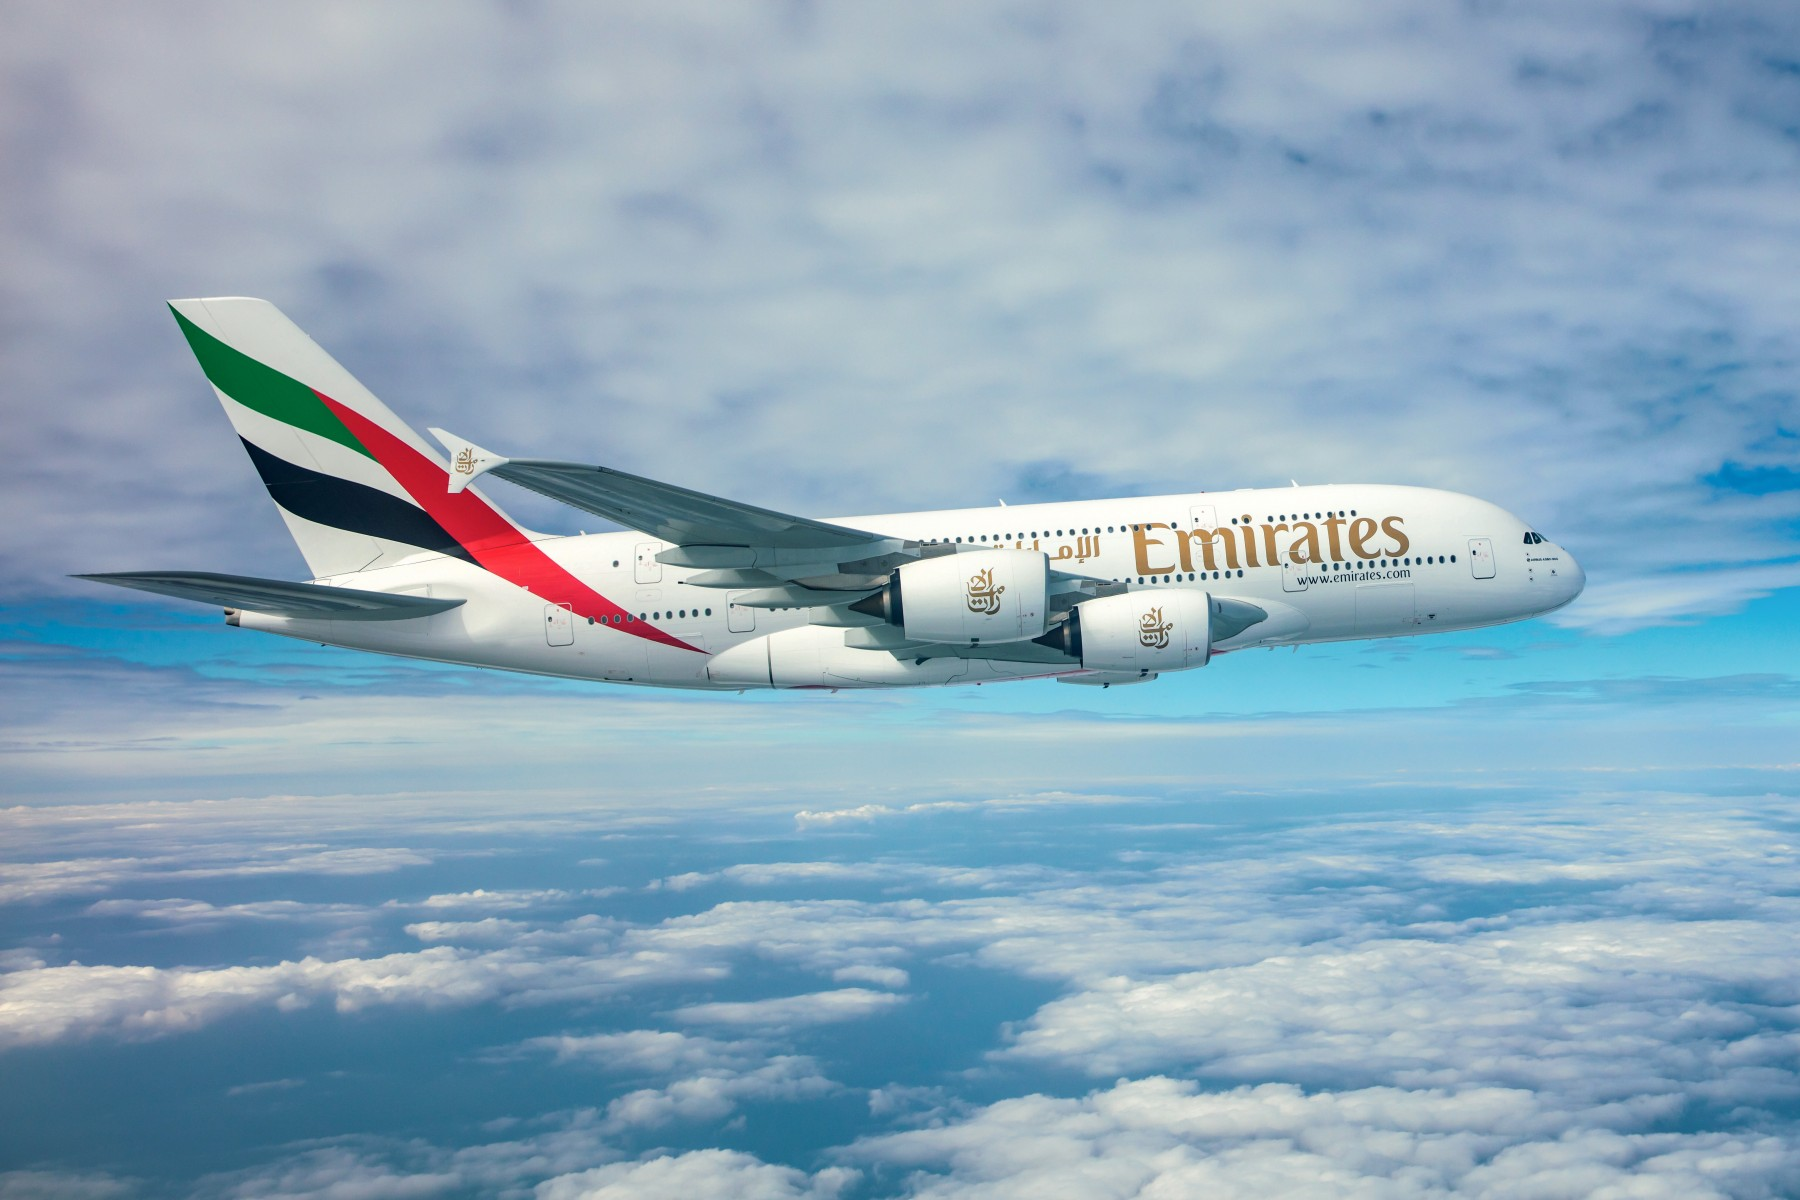 Emirates SkyCargo introduces Airbus A380 mini freighter operations